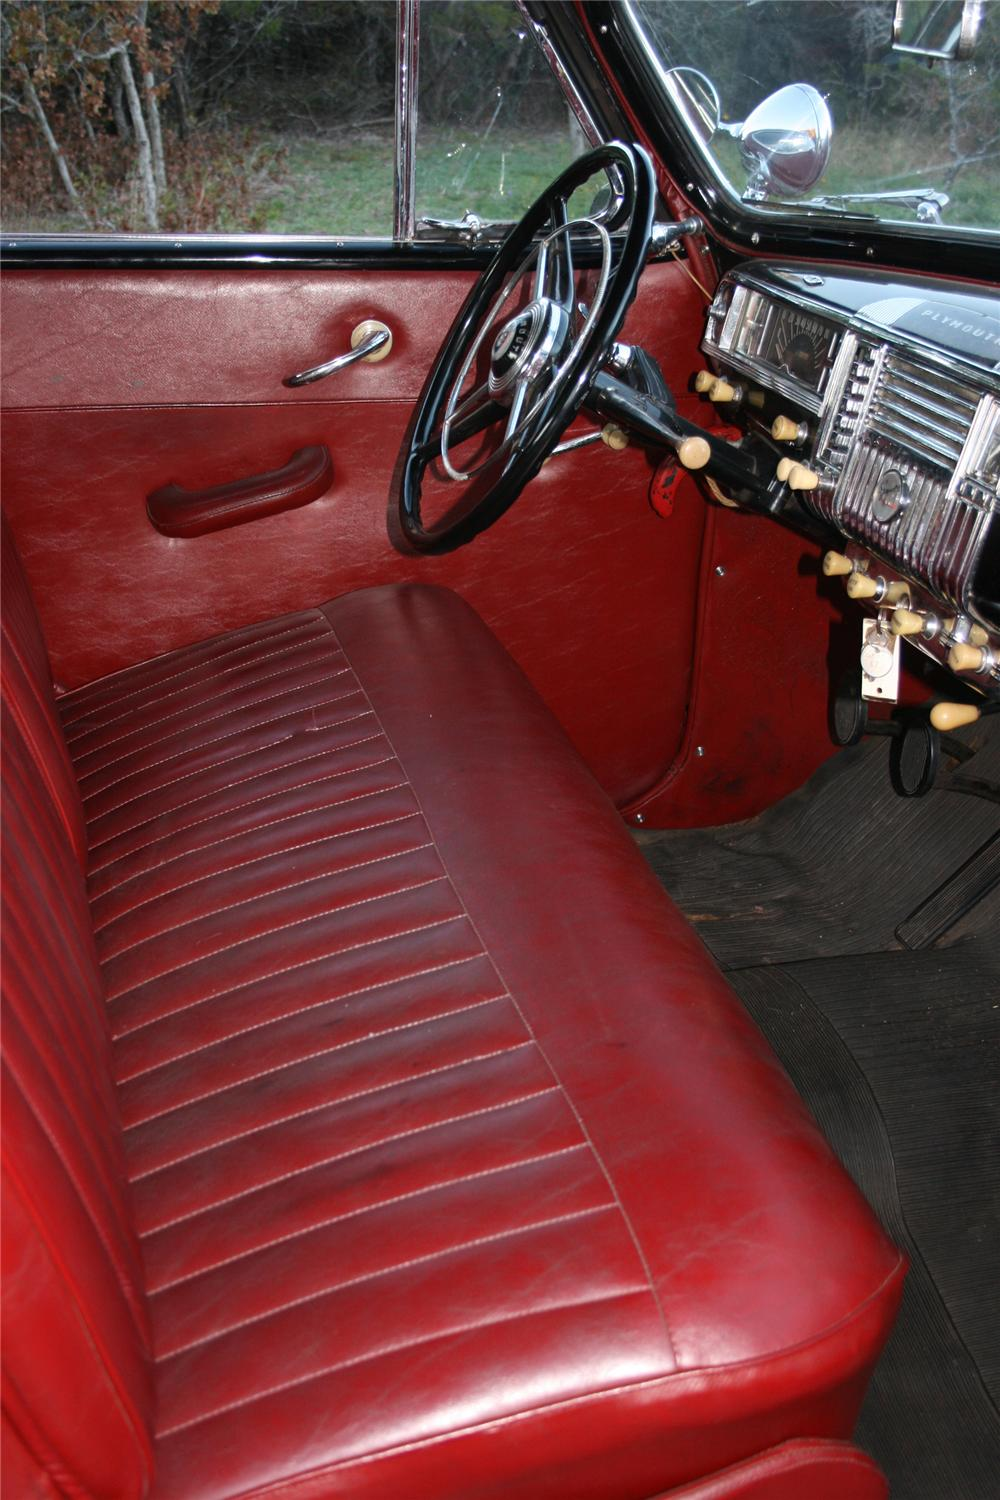 1948 PLYMOUTH SUPER DELUXE CONVERTIBLE - Interior - 96578